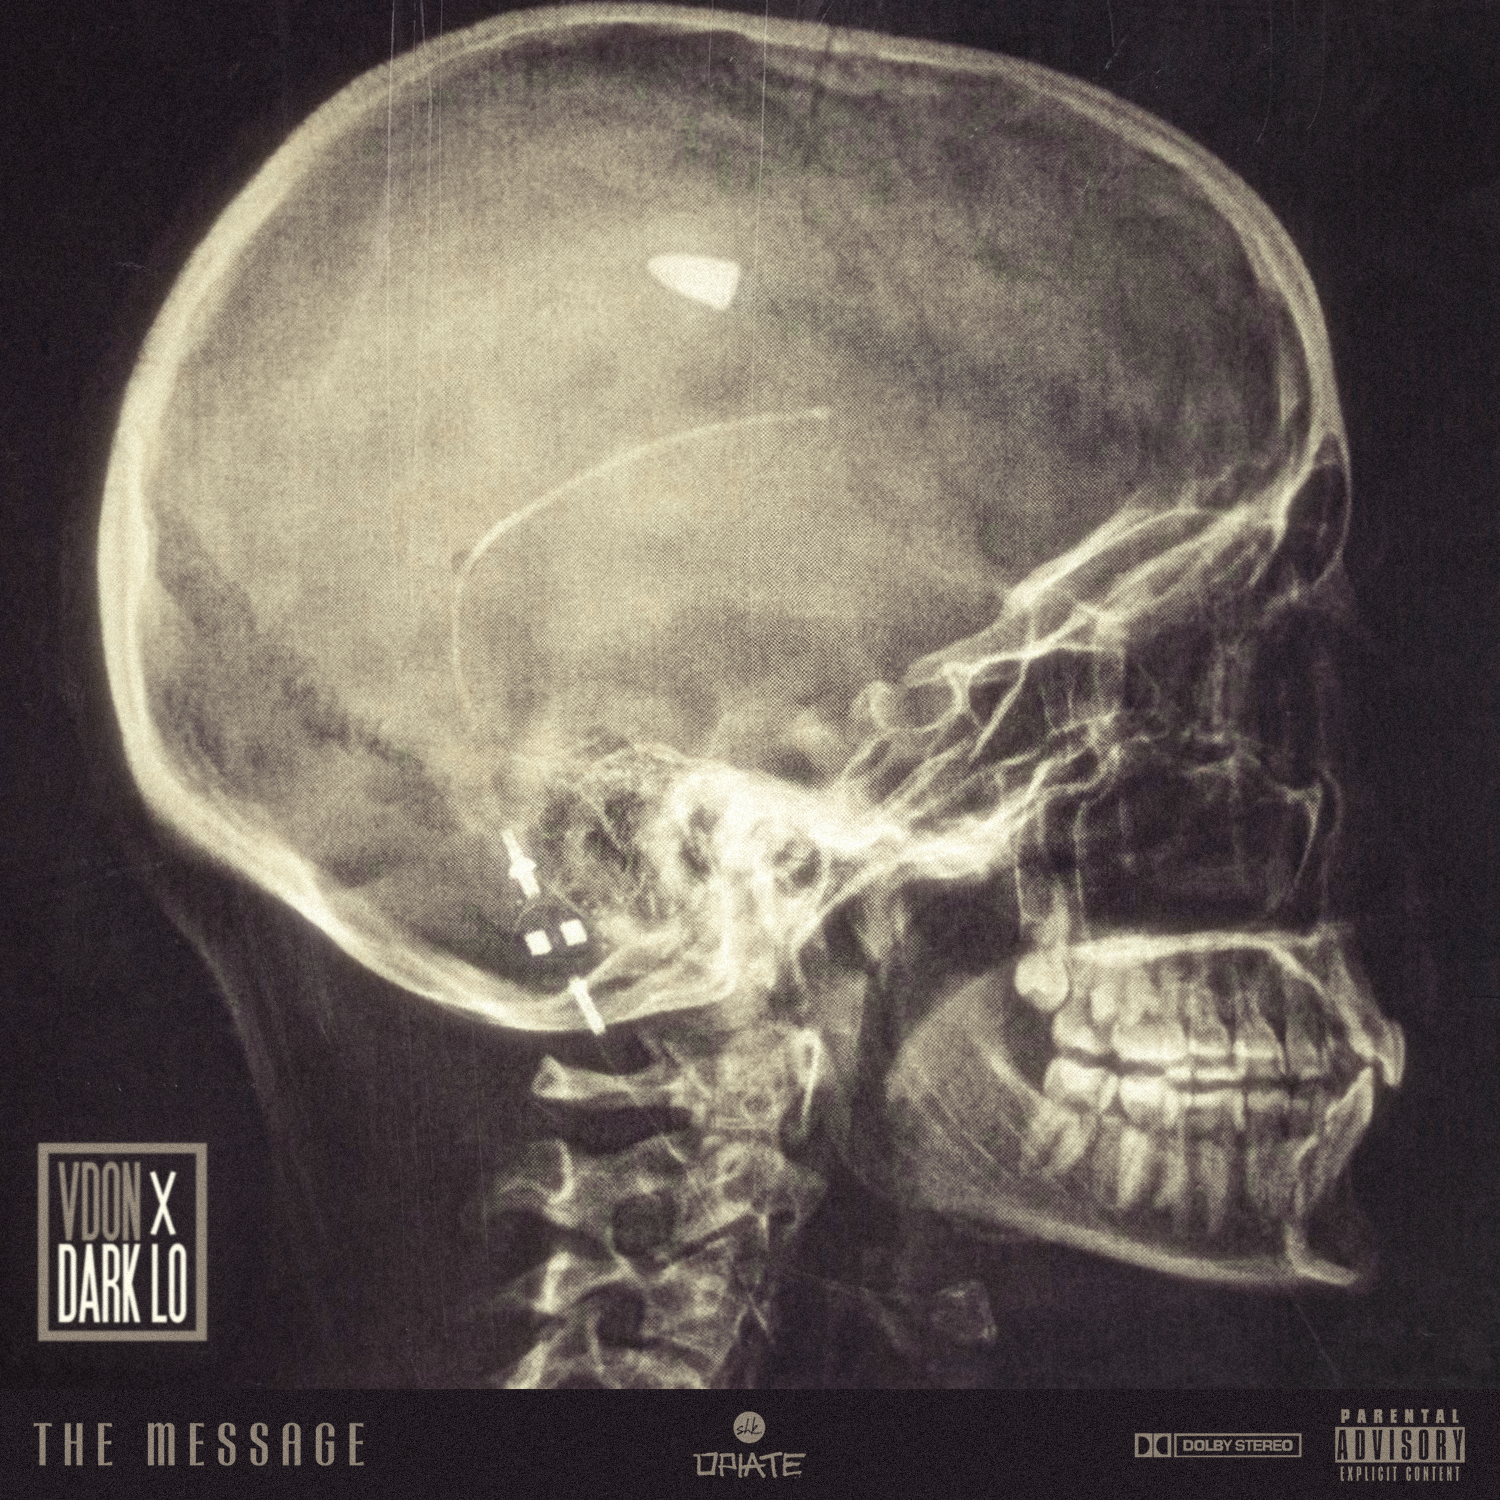 V.Don – The Message ft. Dark lo